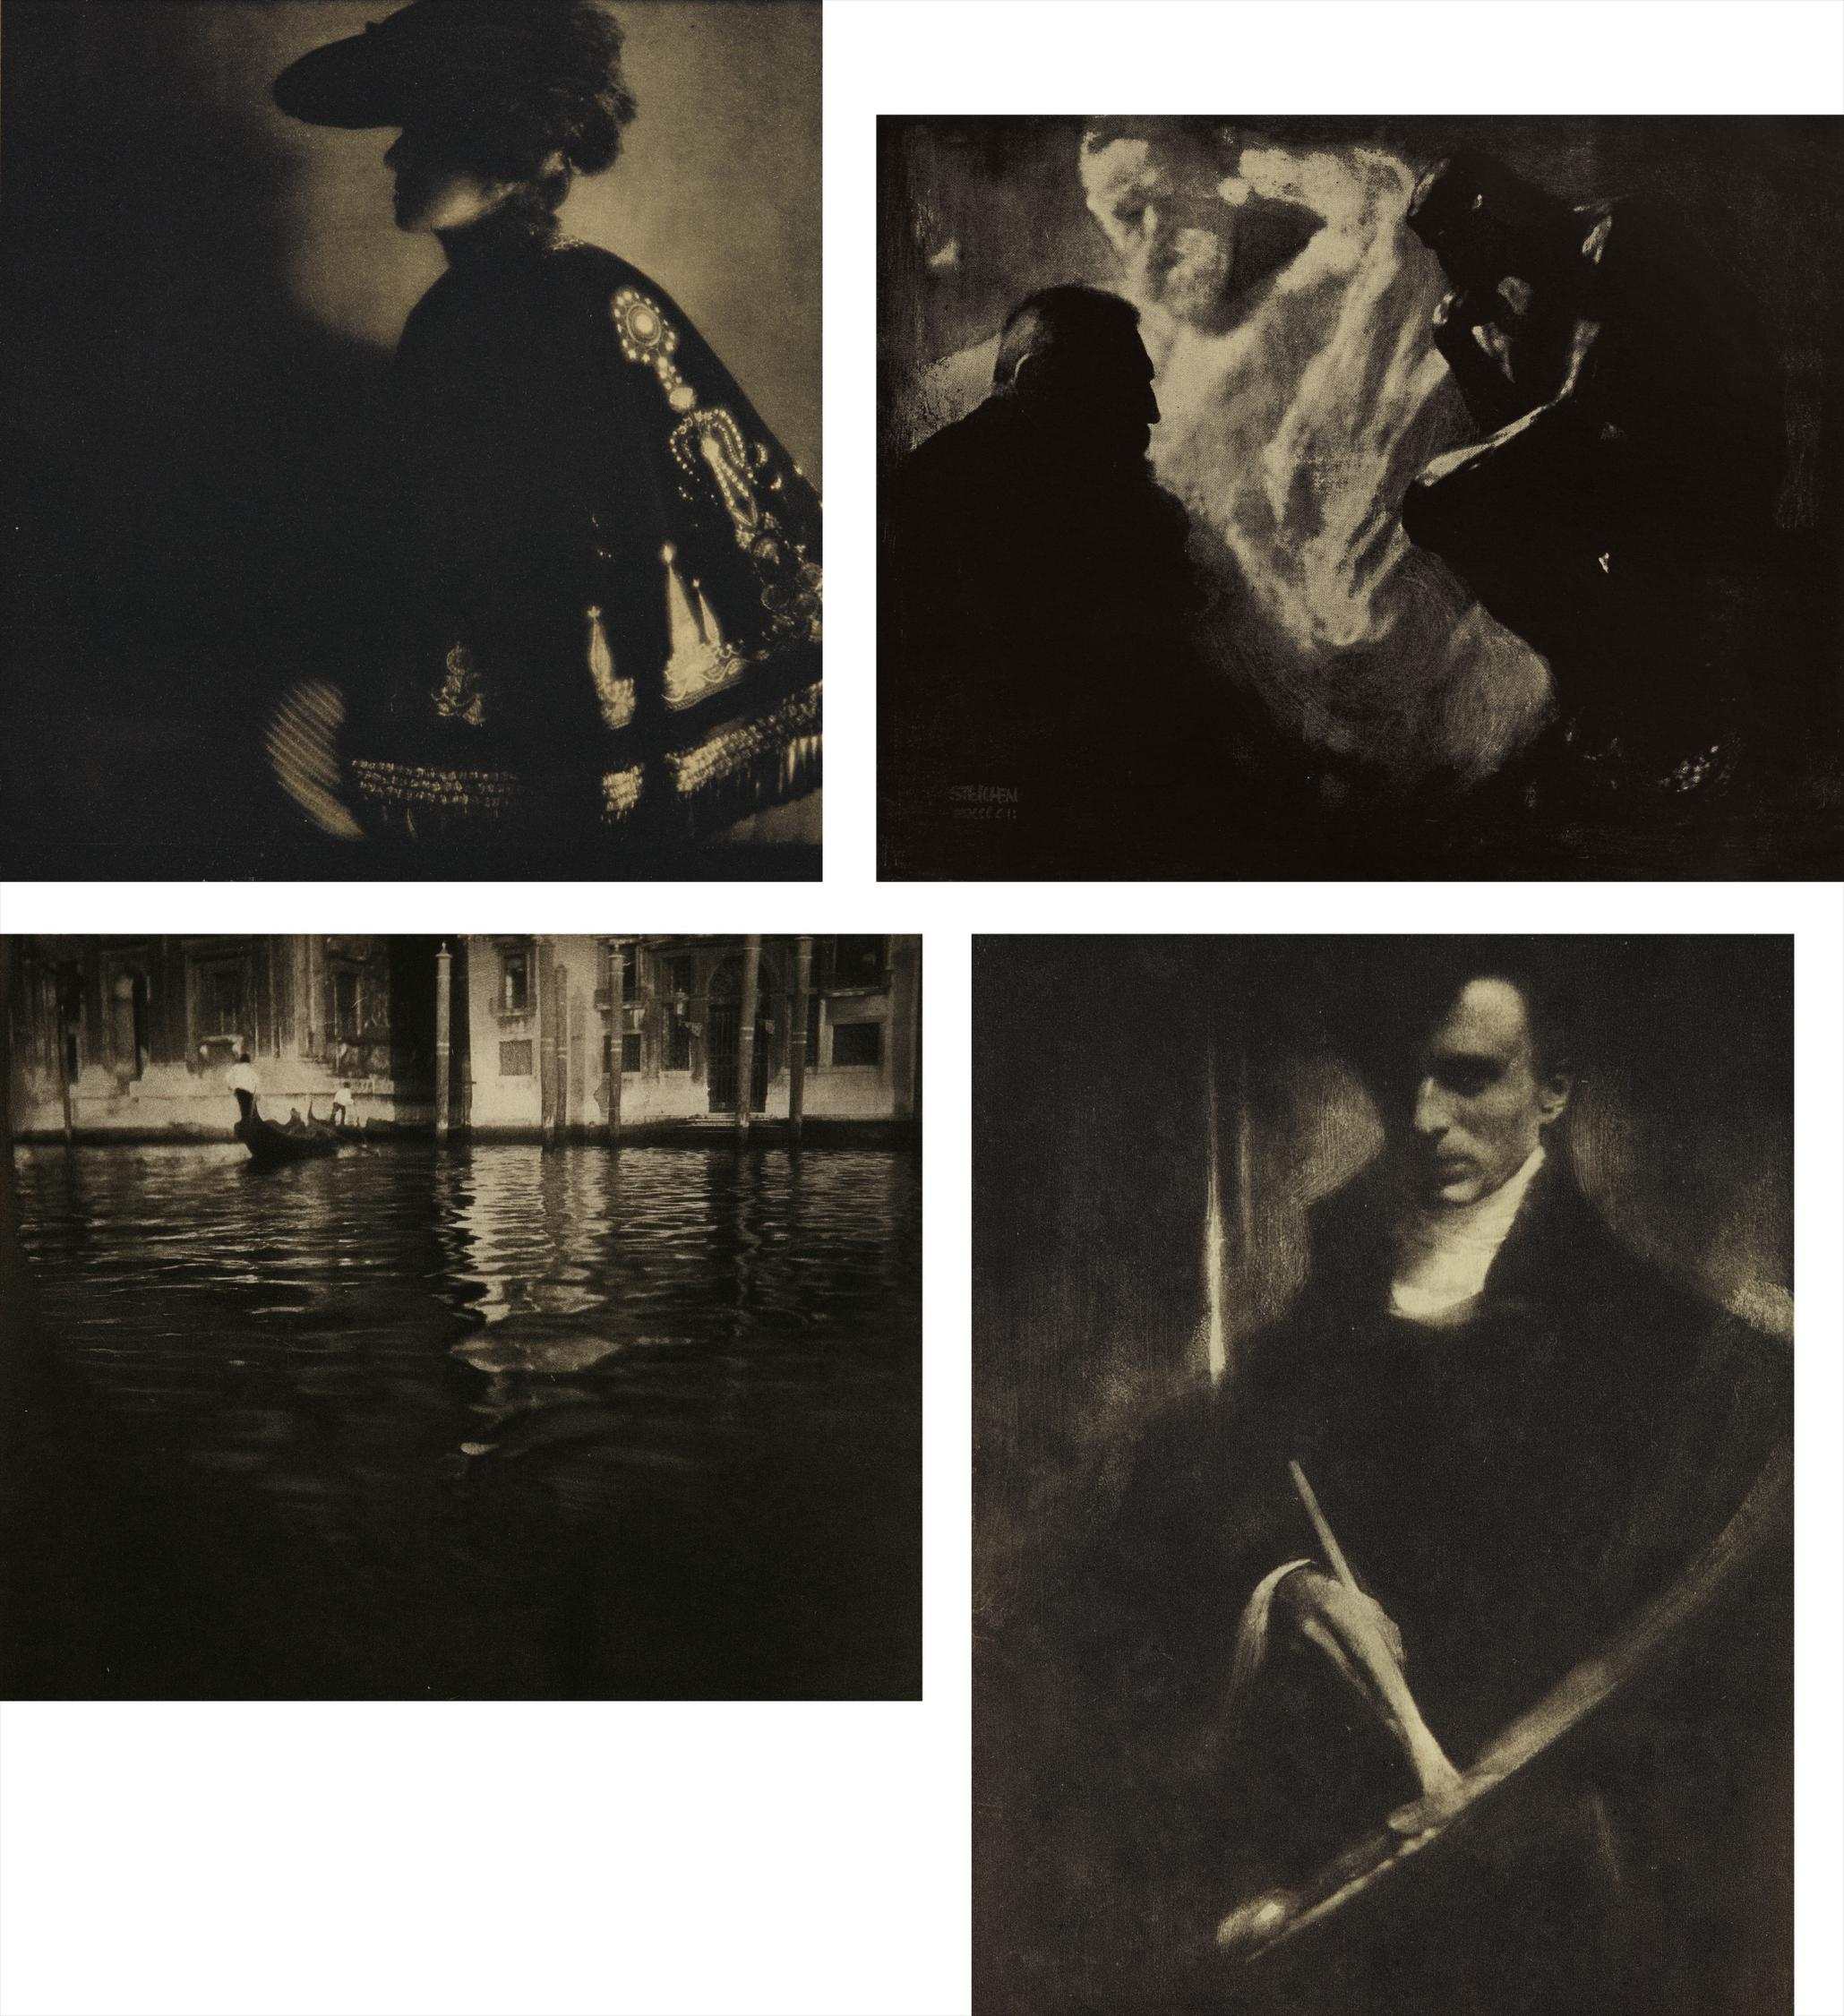 Edward Steichen-Selected Images-1907